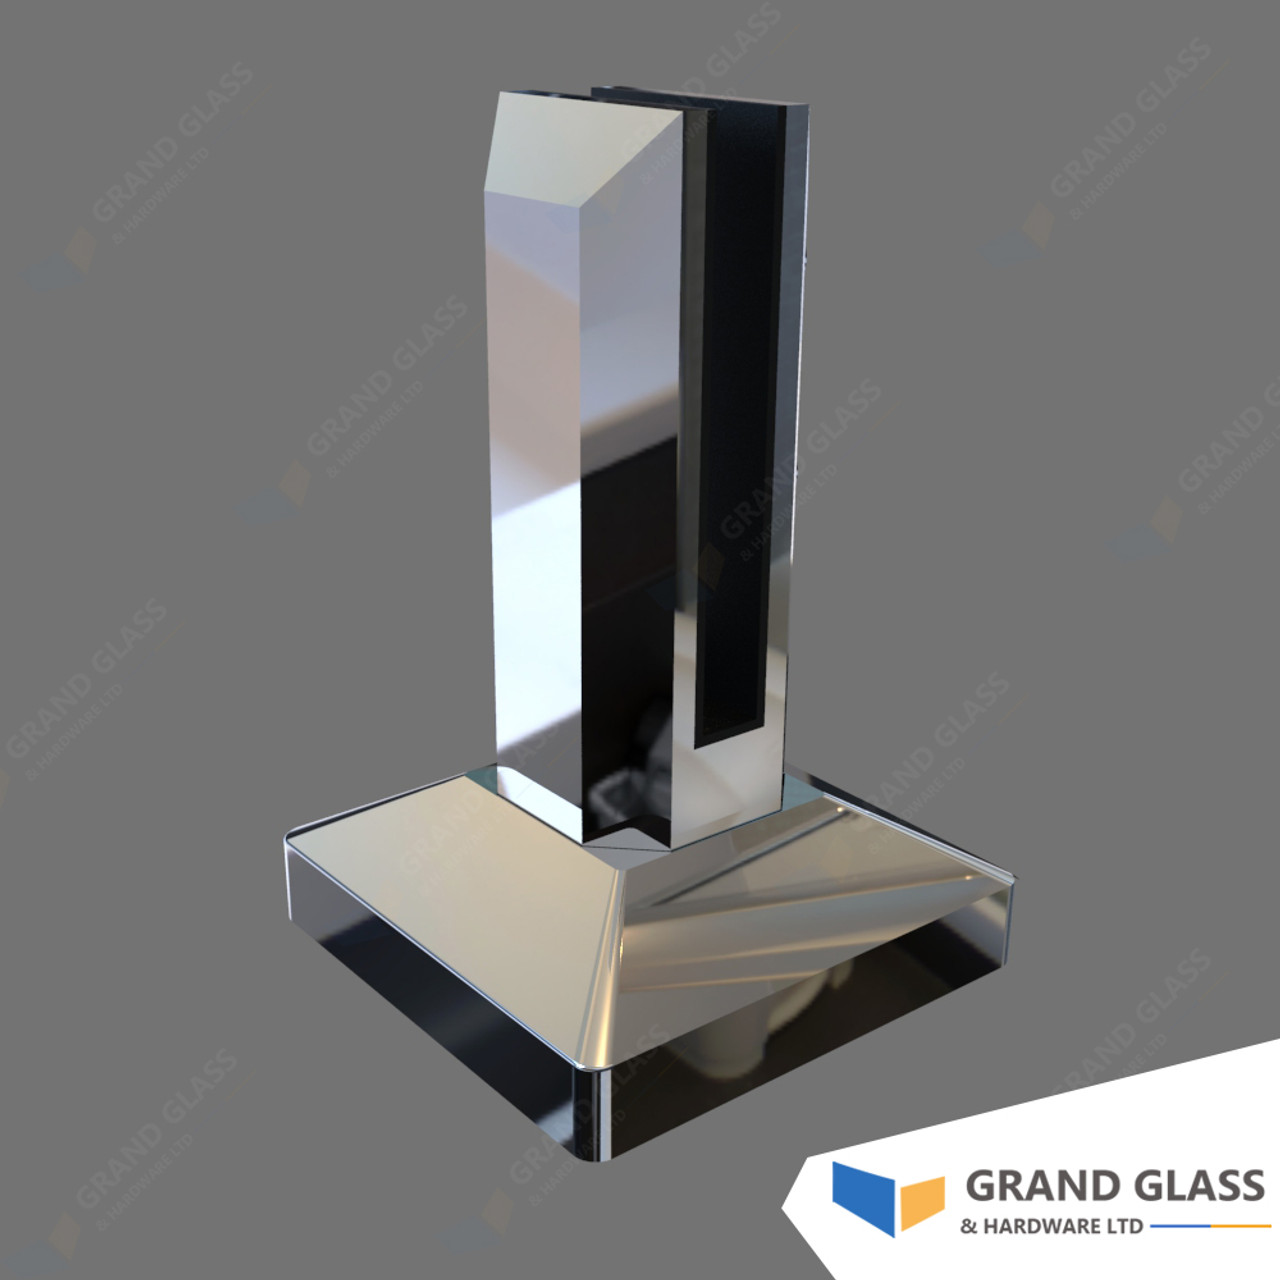 Square Mini Post Chrome Grand Glass